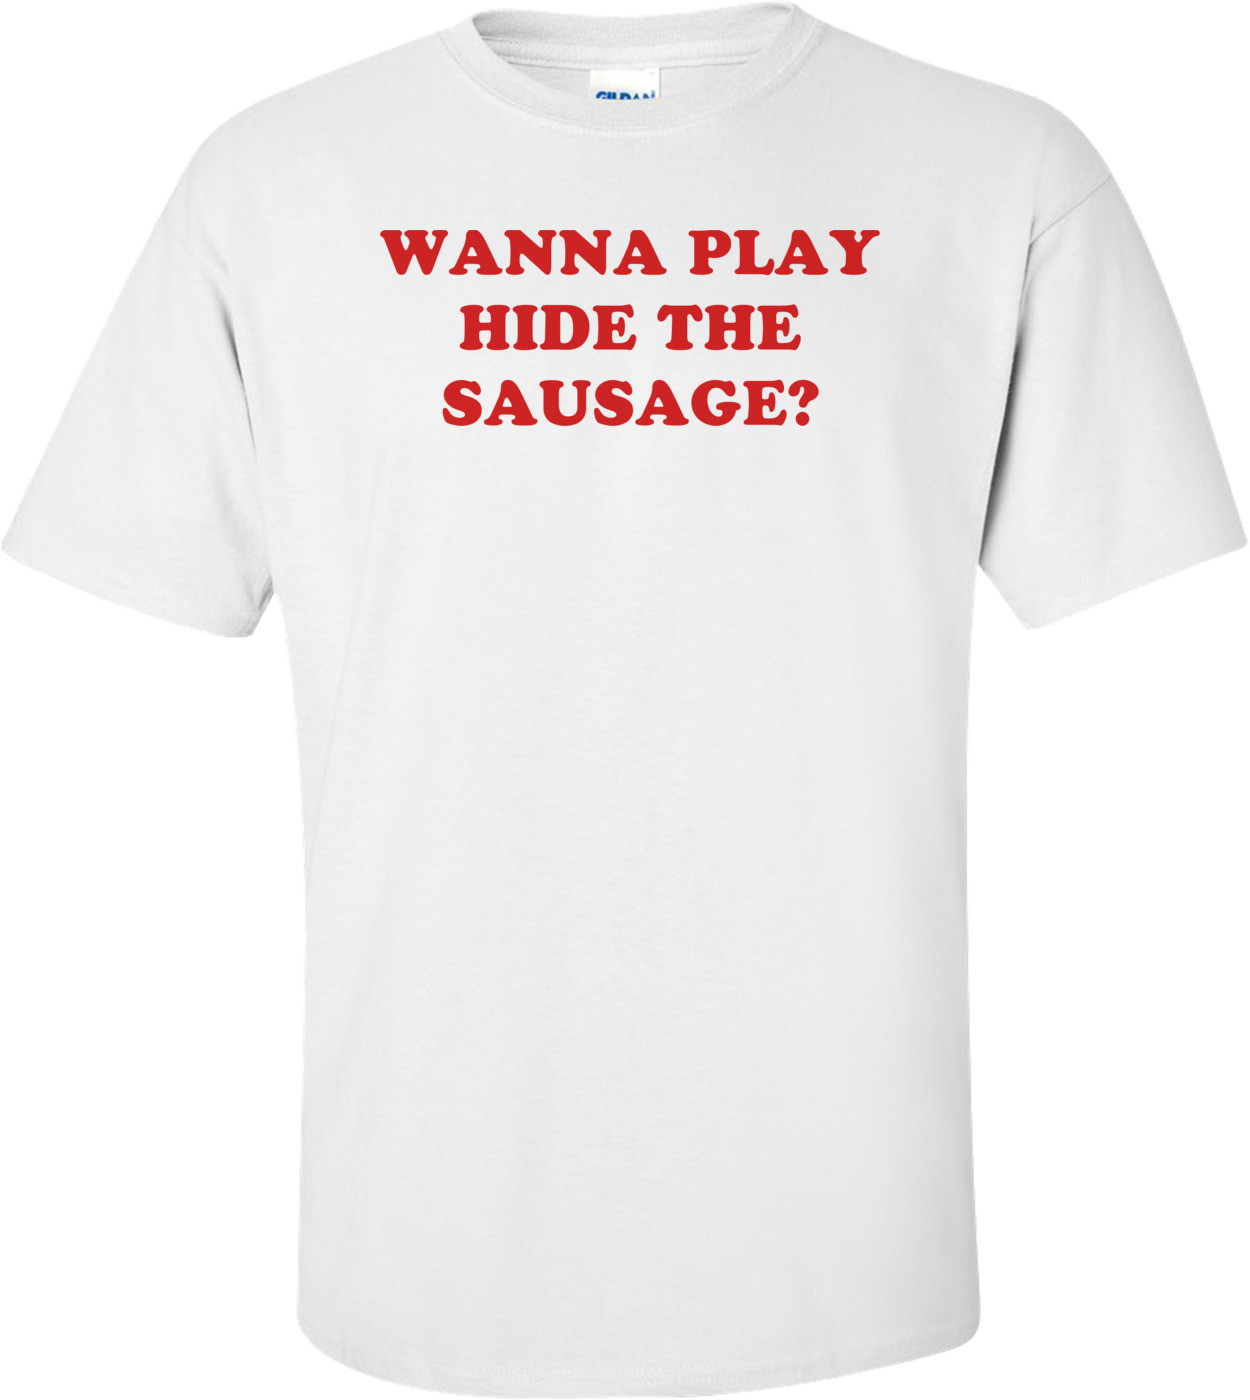 WANNA PLAY HIDE THE SAUSAGE? Shirt